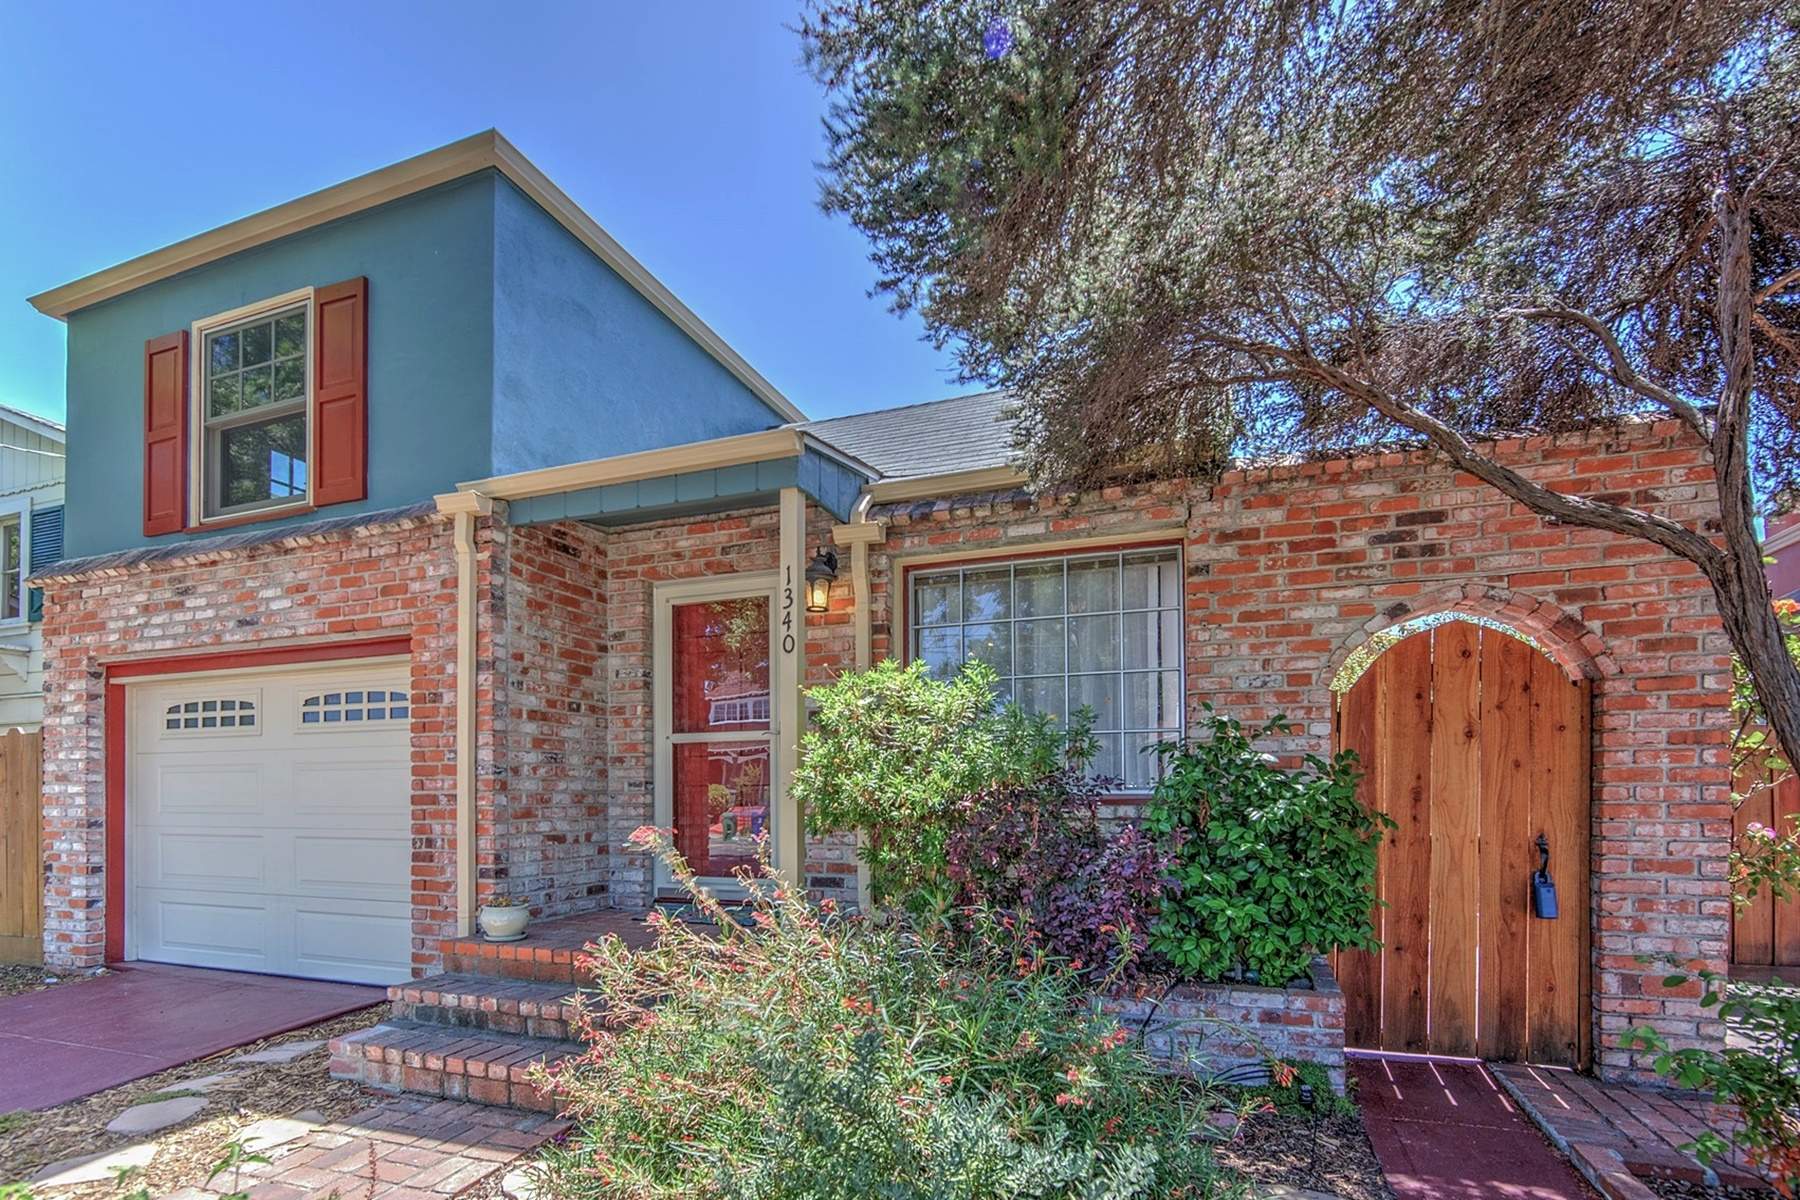 Single Family Home for Sale at Charming East End Mid Century Home 1340 Fernside Boulevard Alameda, California 94501 United States